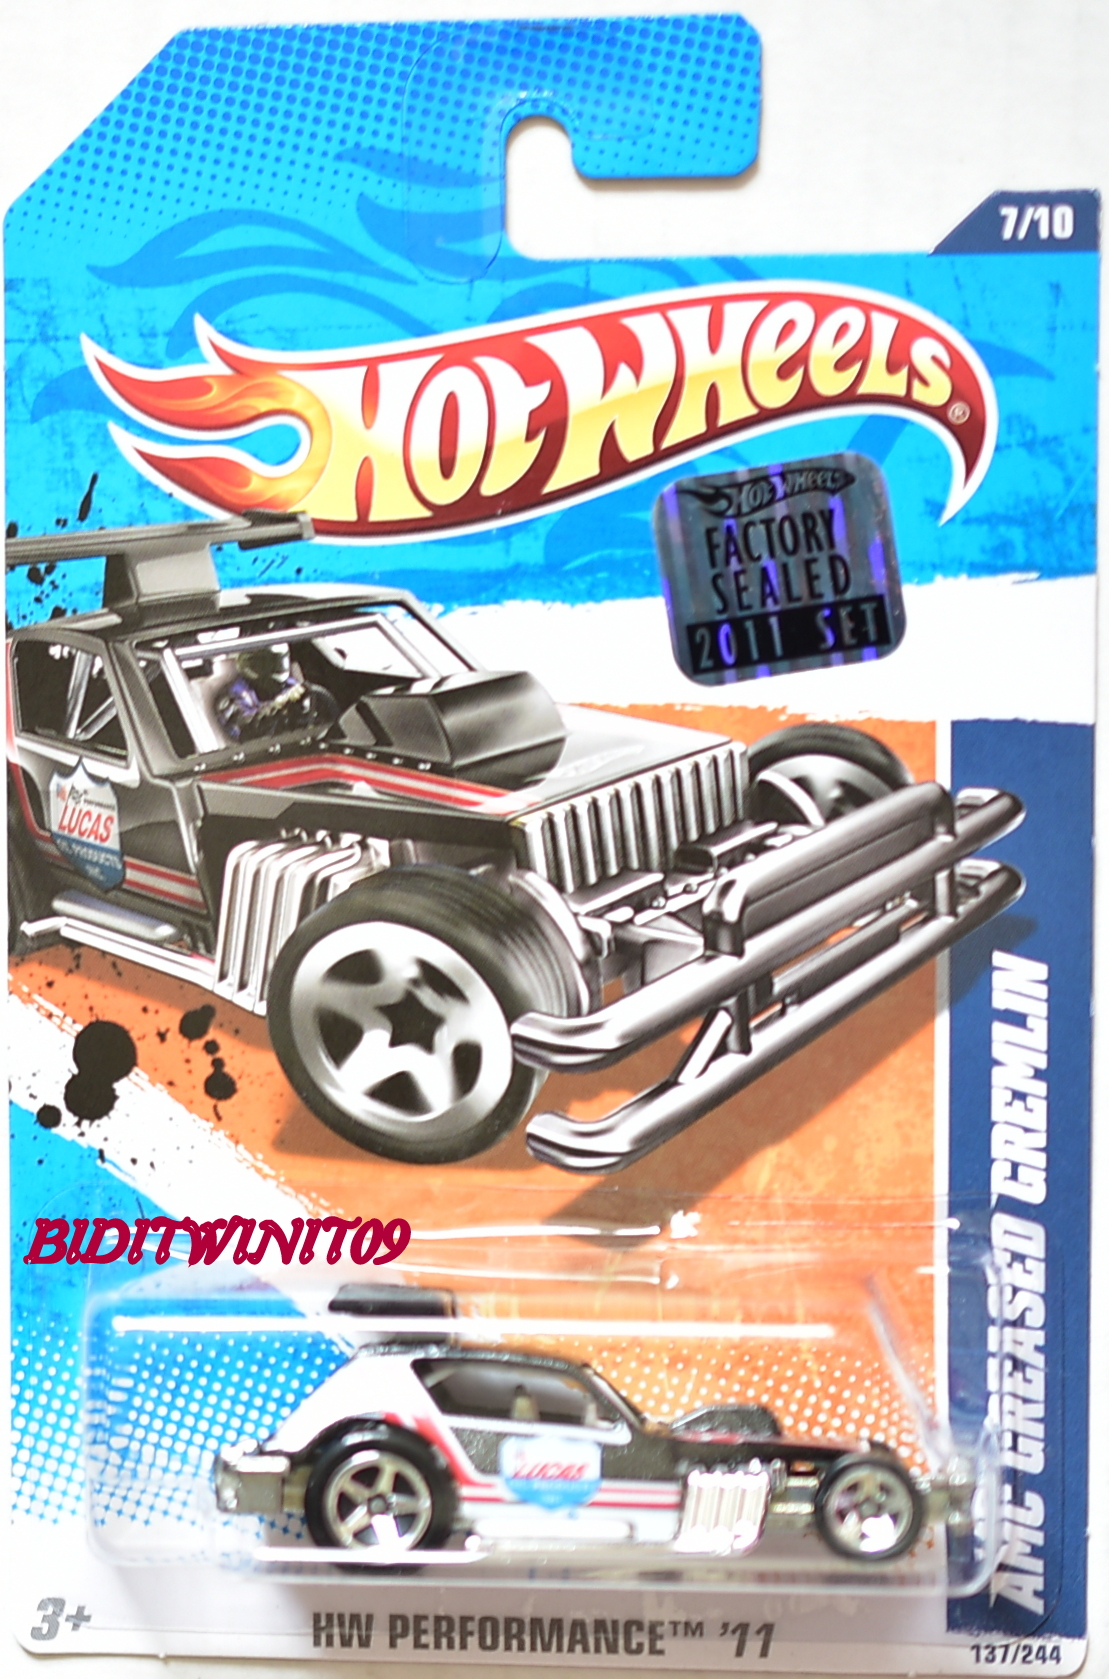 HOT WHEELS 2011 HW PERFORMANCE AMC GREASED GREMLIN BLACK FACTORY SEALED